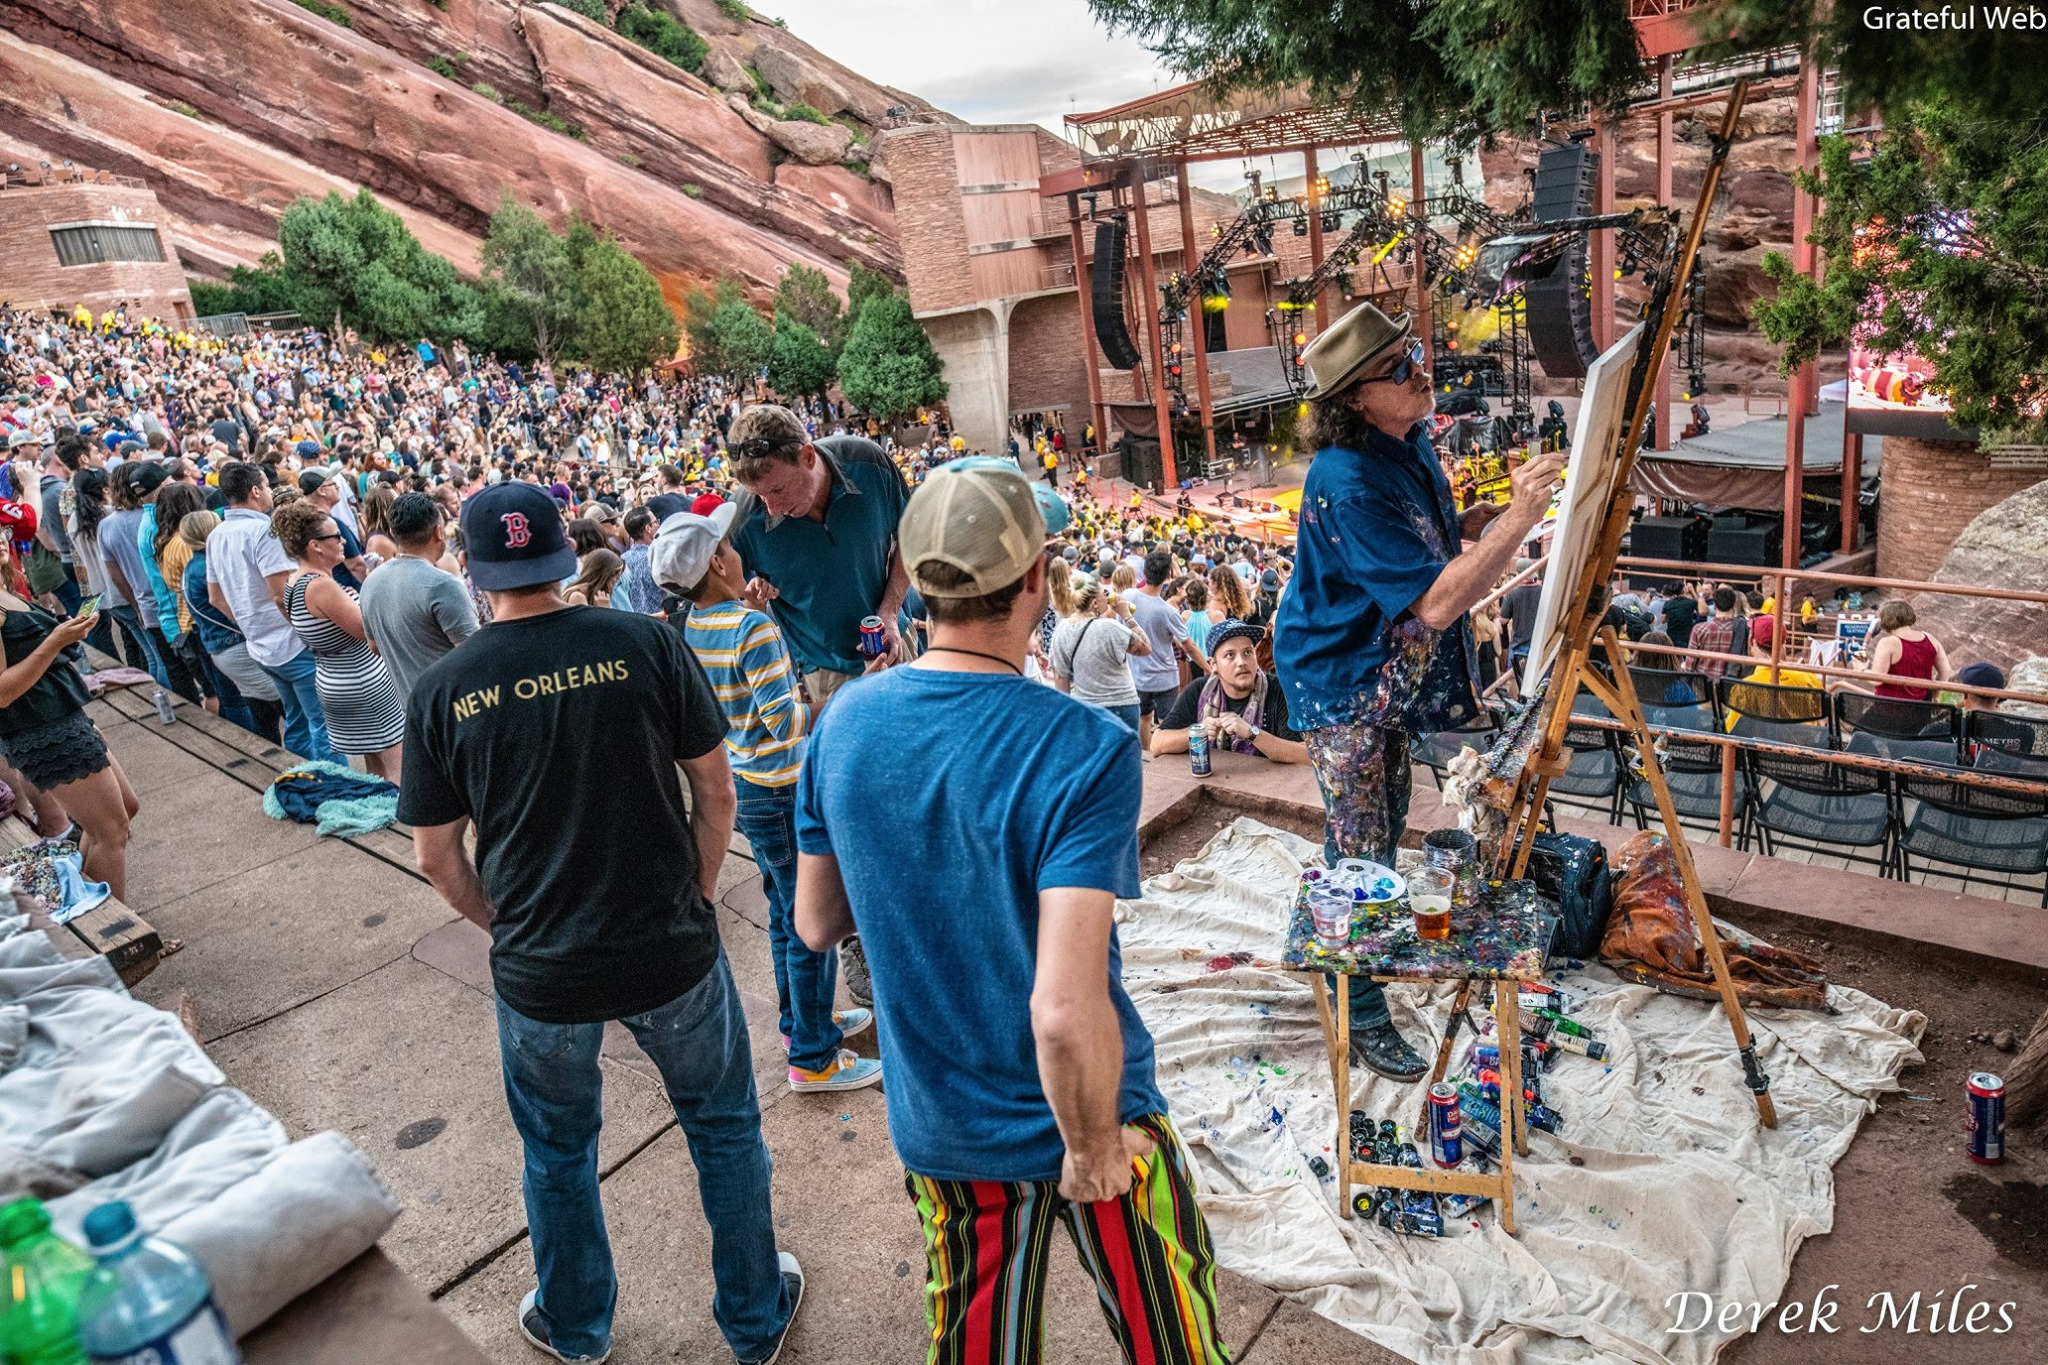 Scramble Campbell doing his thing @ Red Rocks